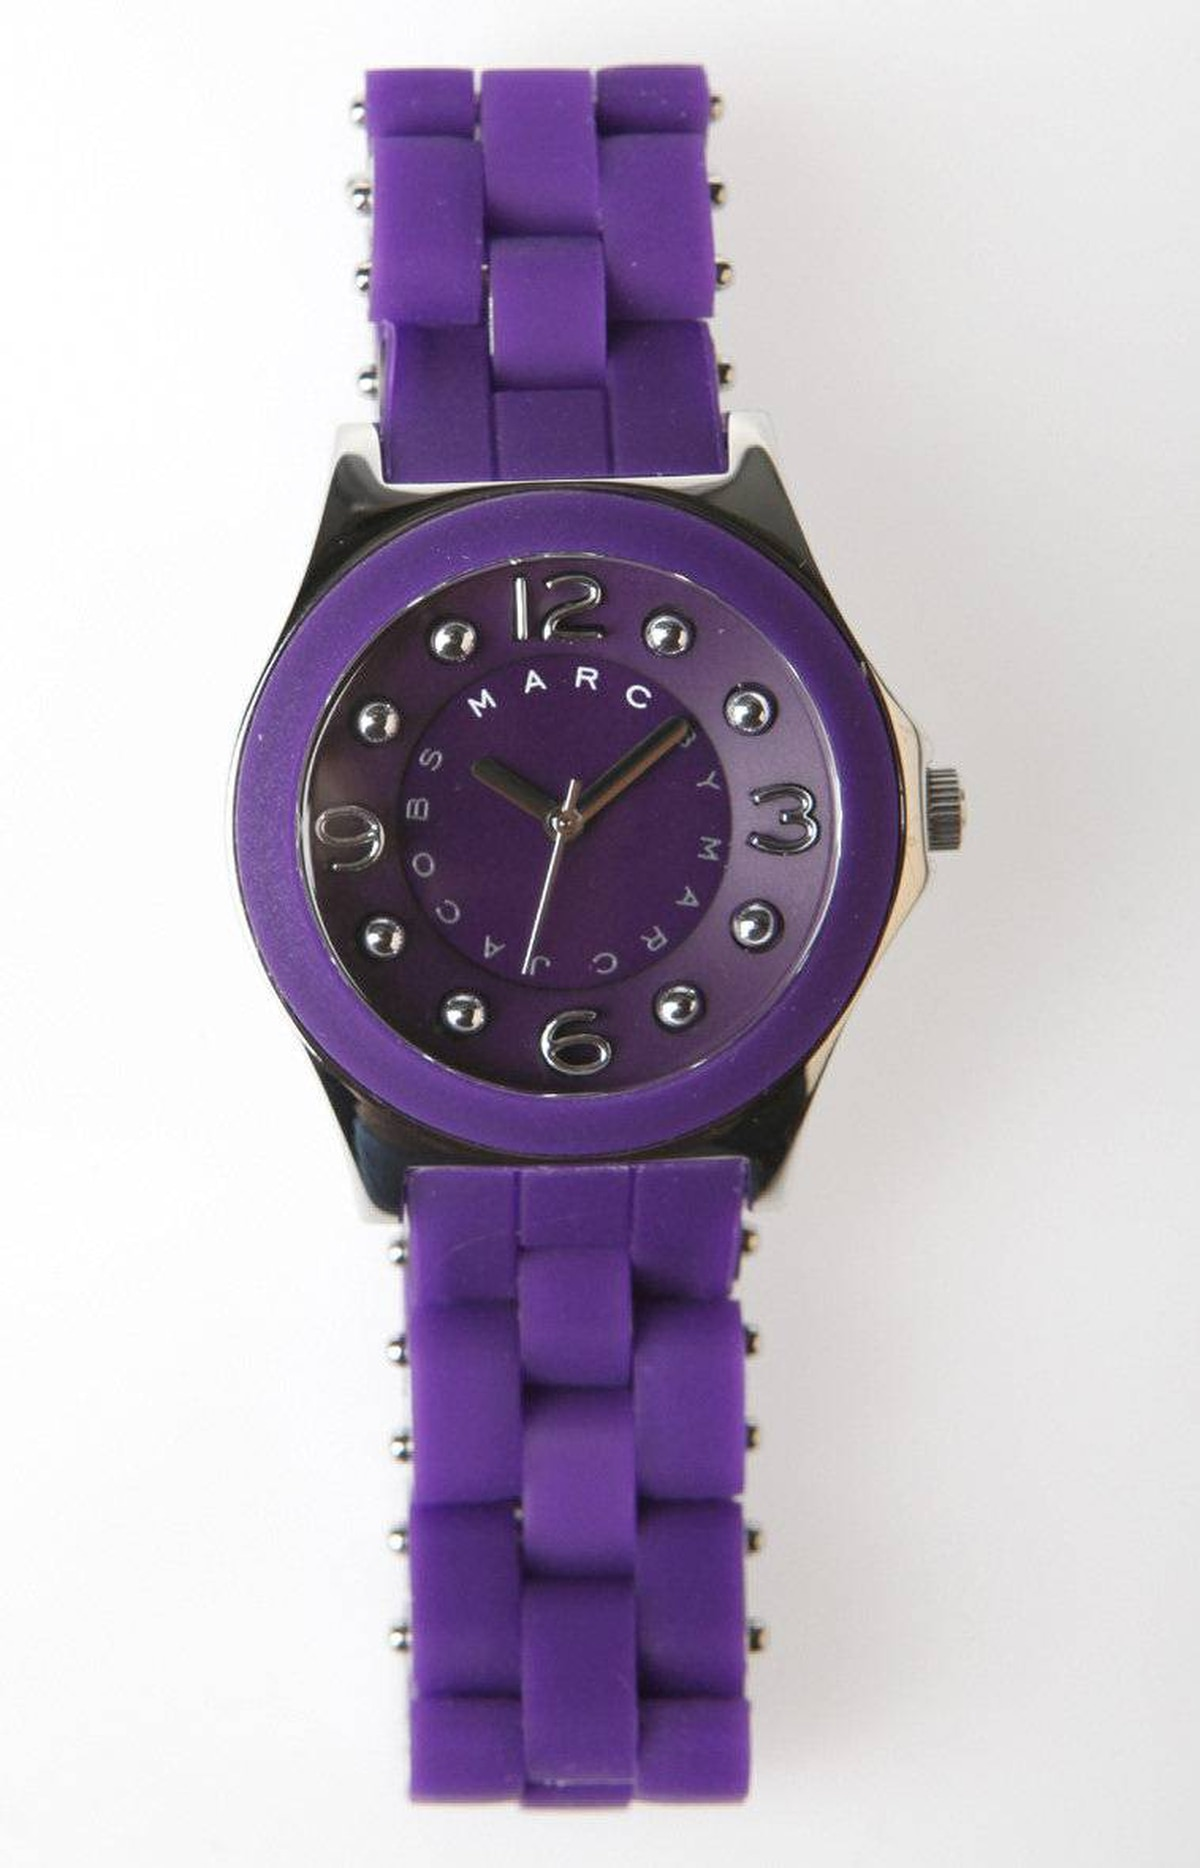 Marc by Marc Jacobs watch (dark purple), $210 at the Bay